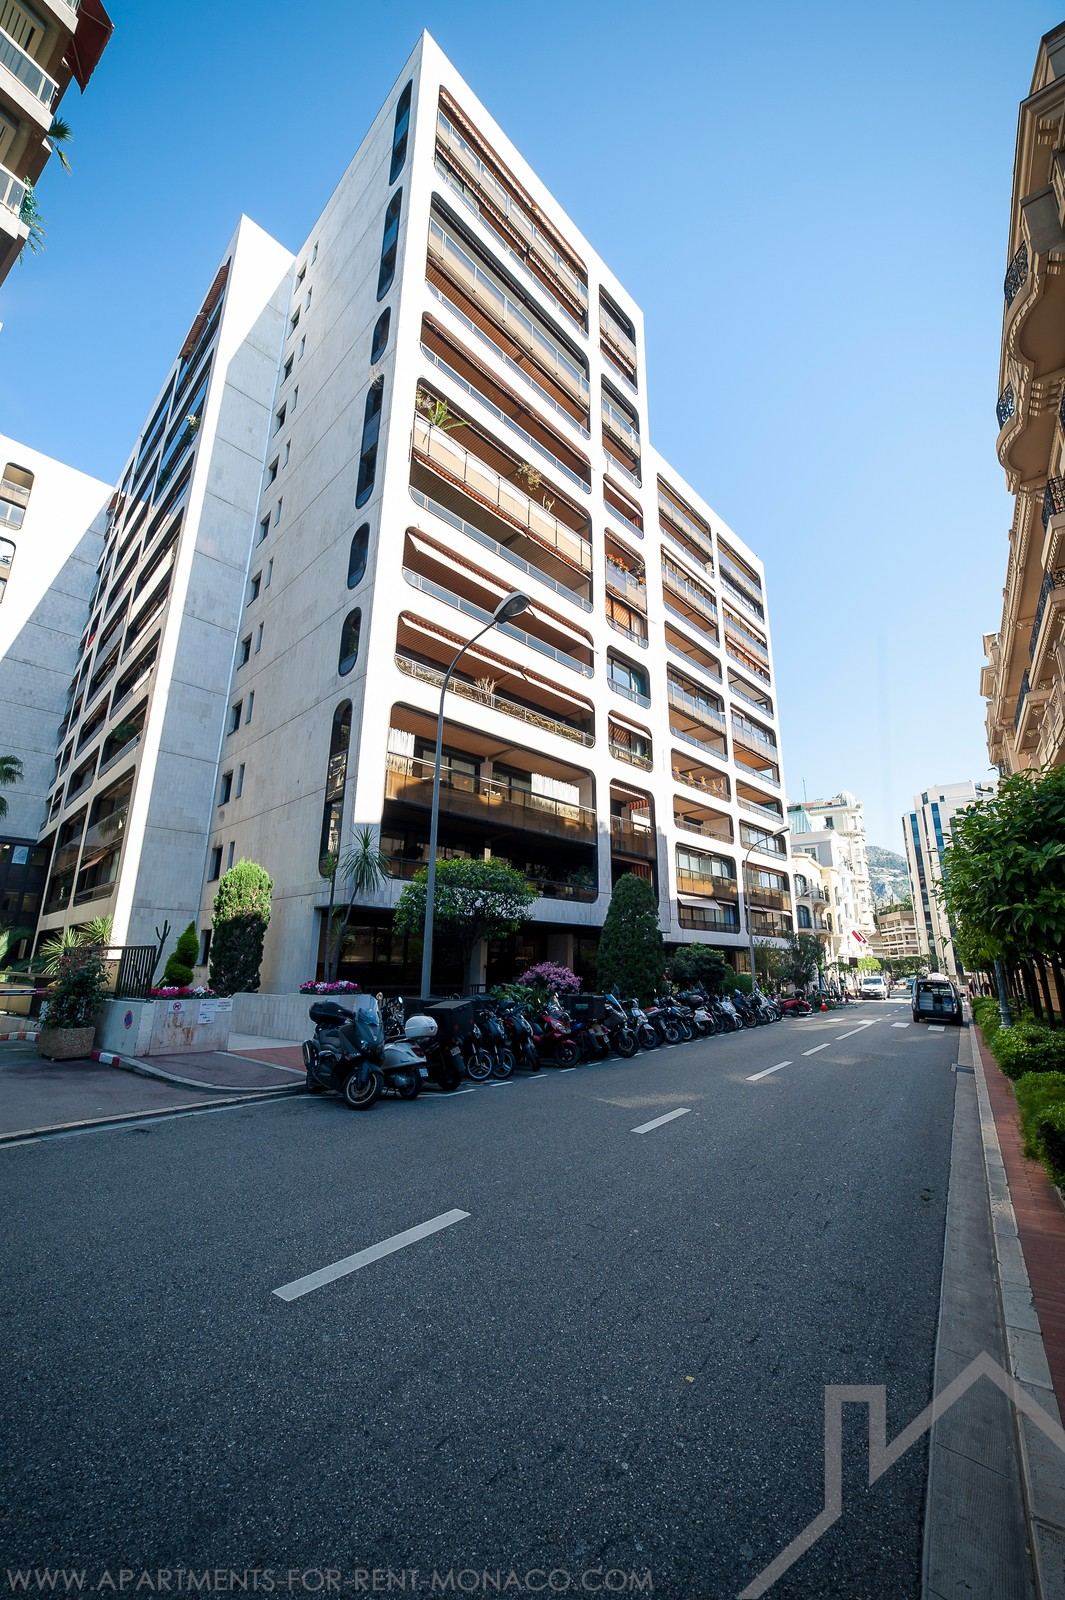 Montaigne: car park space, available quickly - Apartments for rent in Monaco